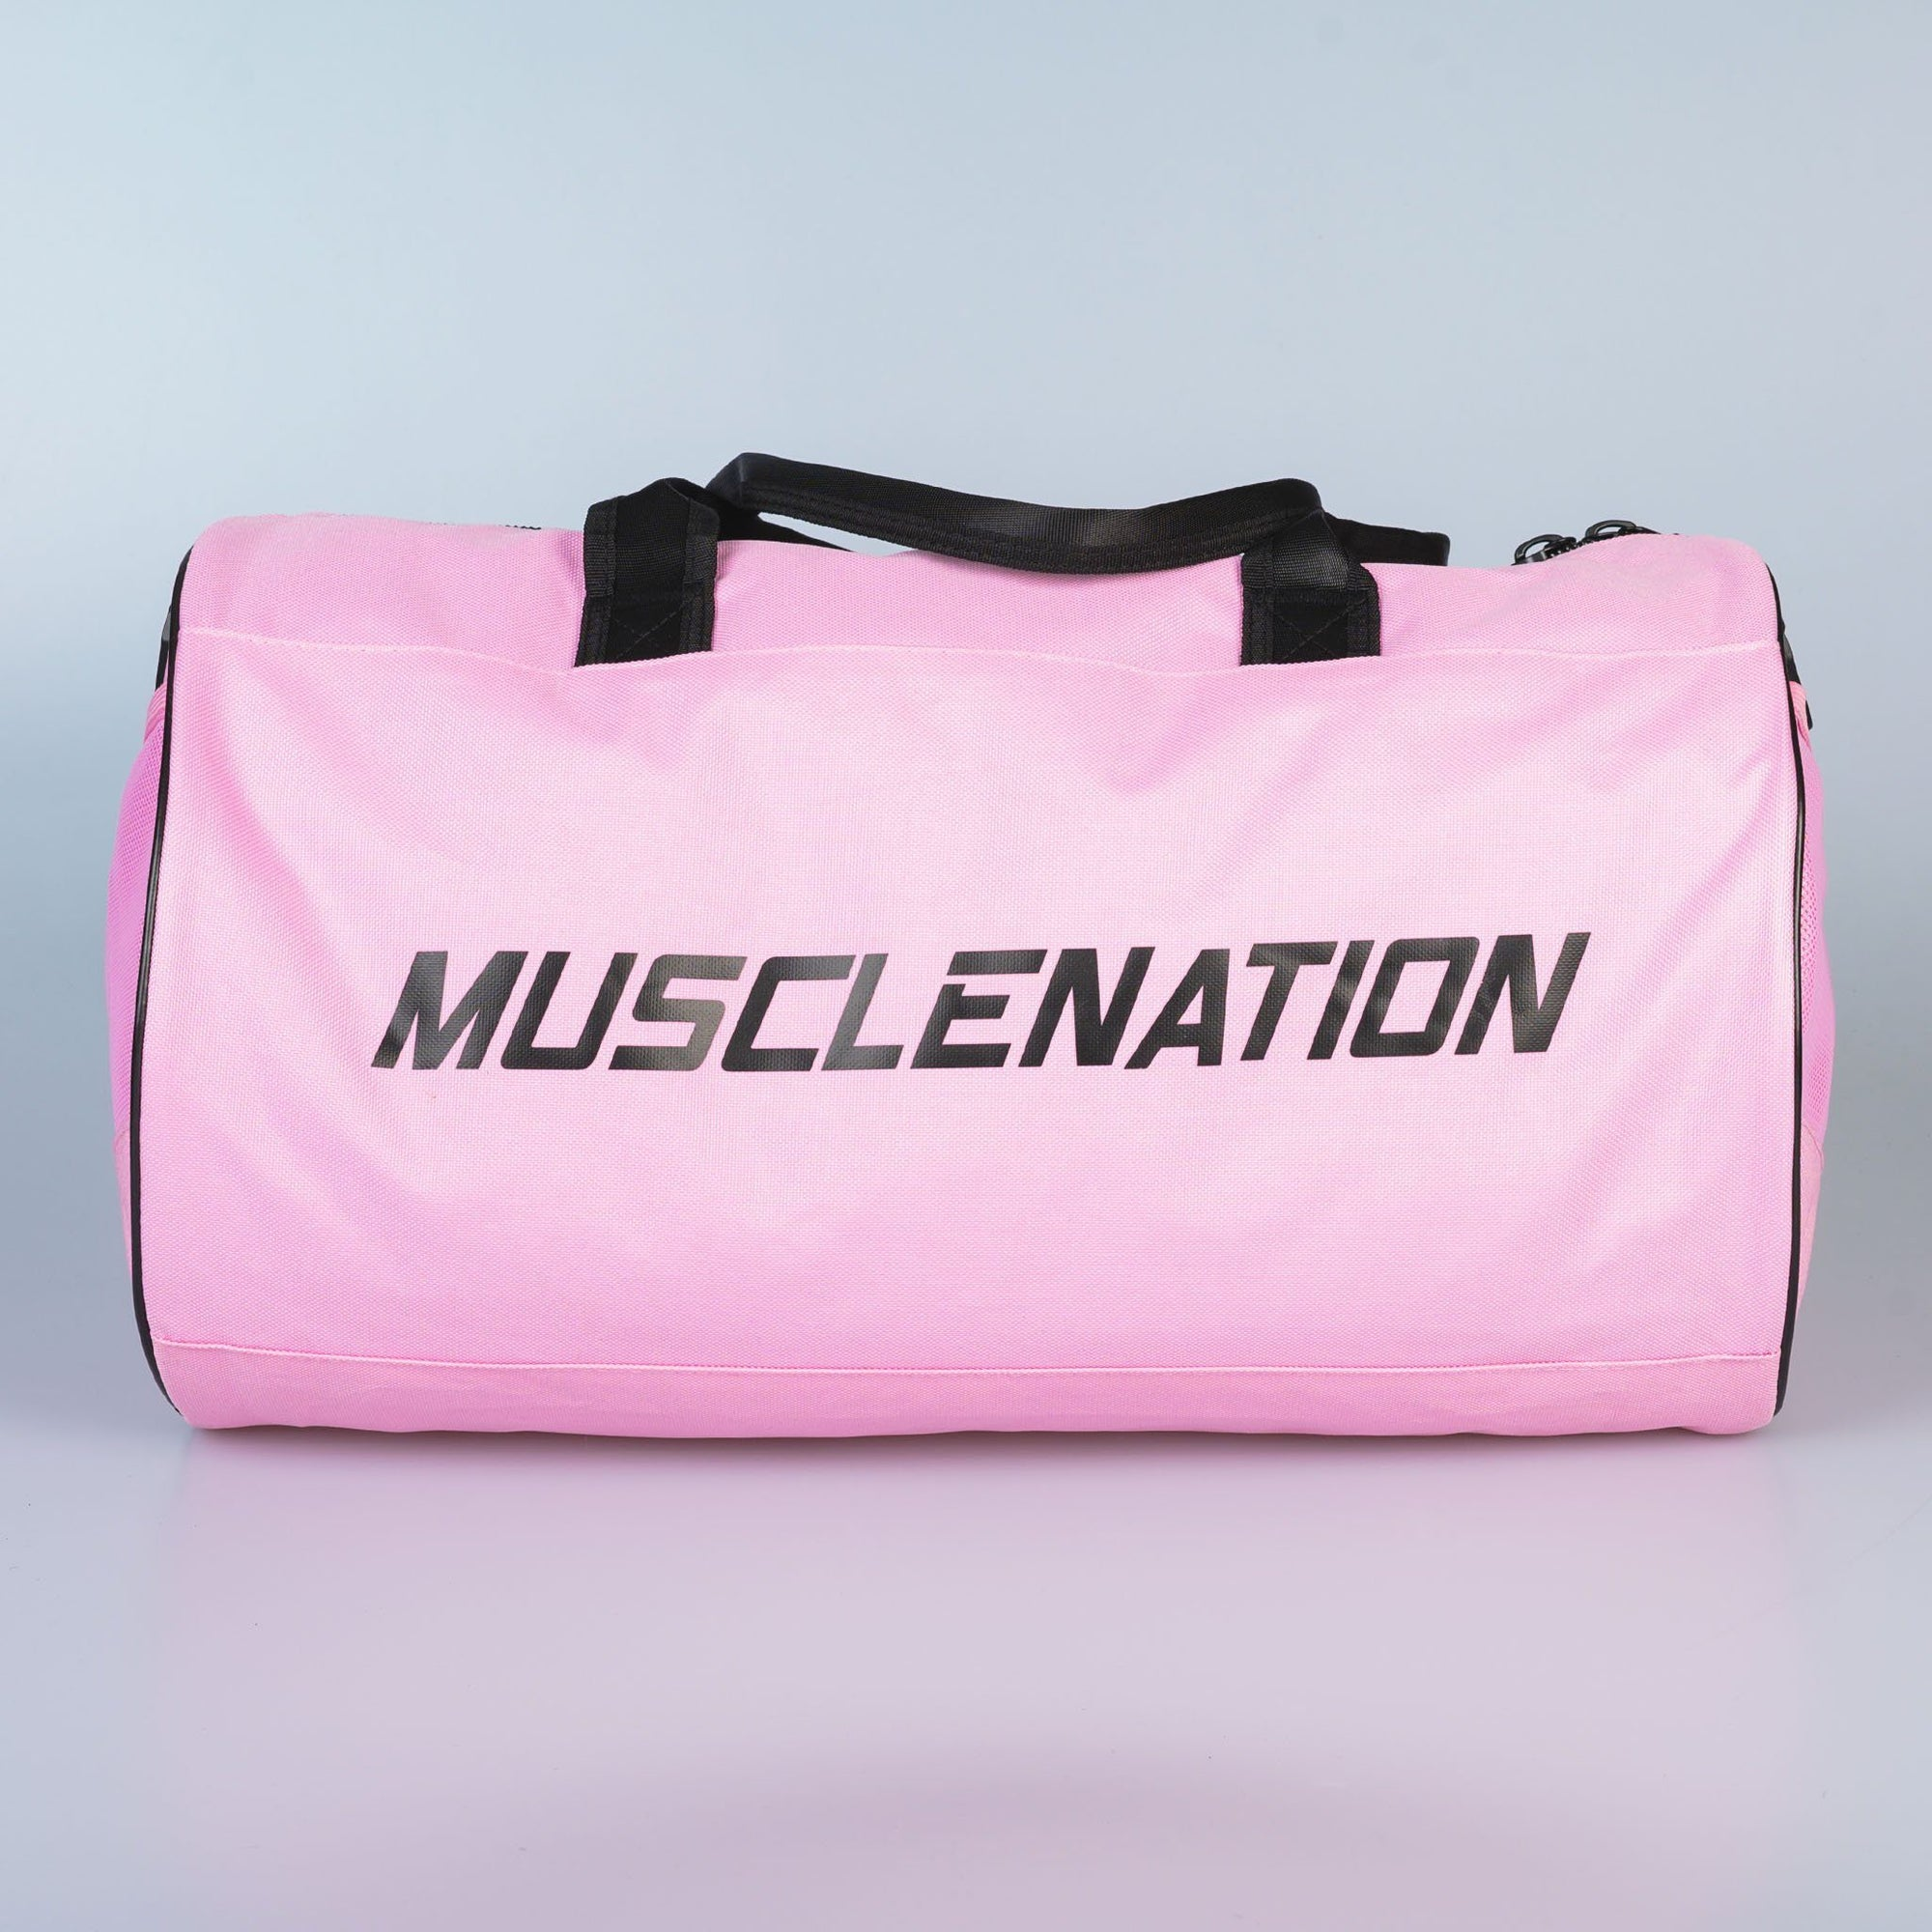 Muscle Nation Round Premium Gym Bag - Pink